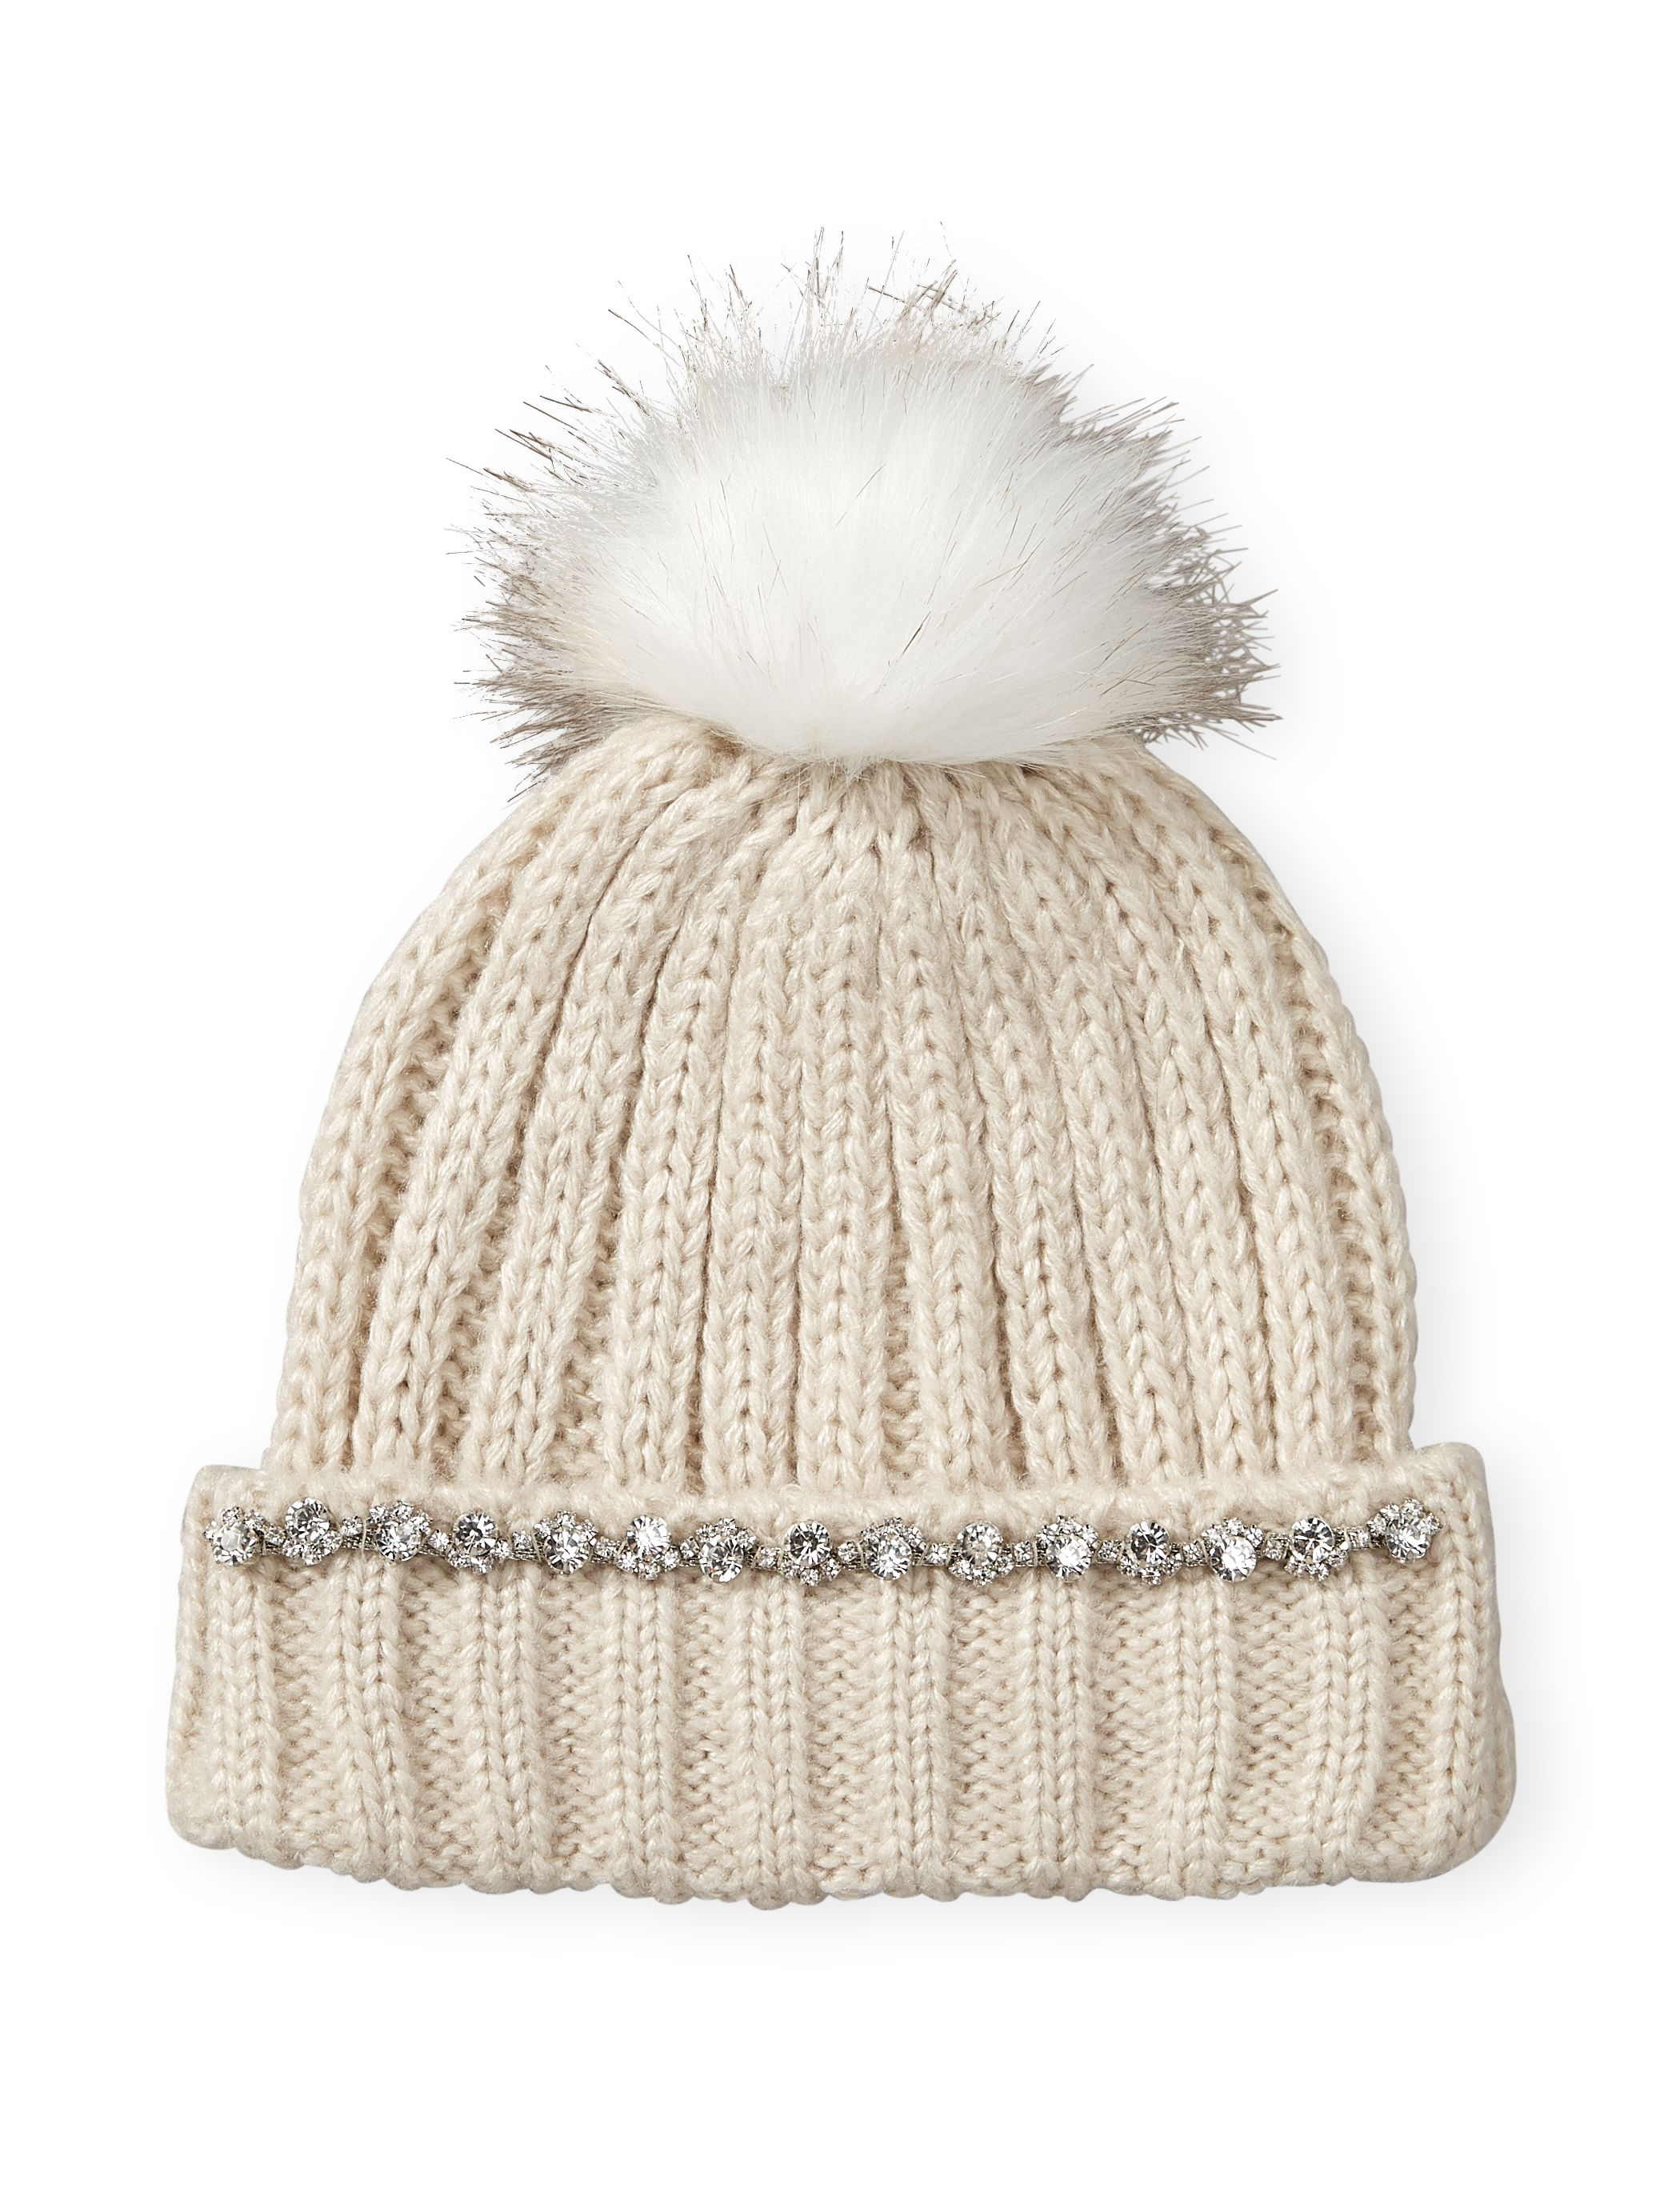 87d75ef72ad Embellished Pom Pom Hat - Faux gems and this ultra soft pom pom are the  perfect complements to sparkling winter weather!